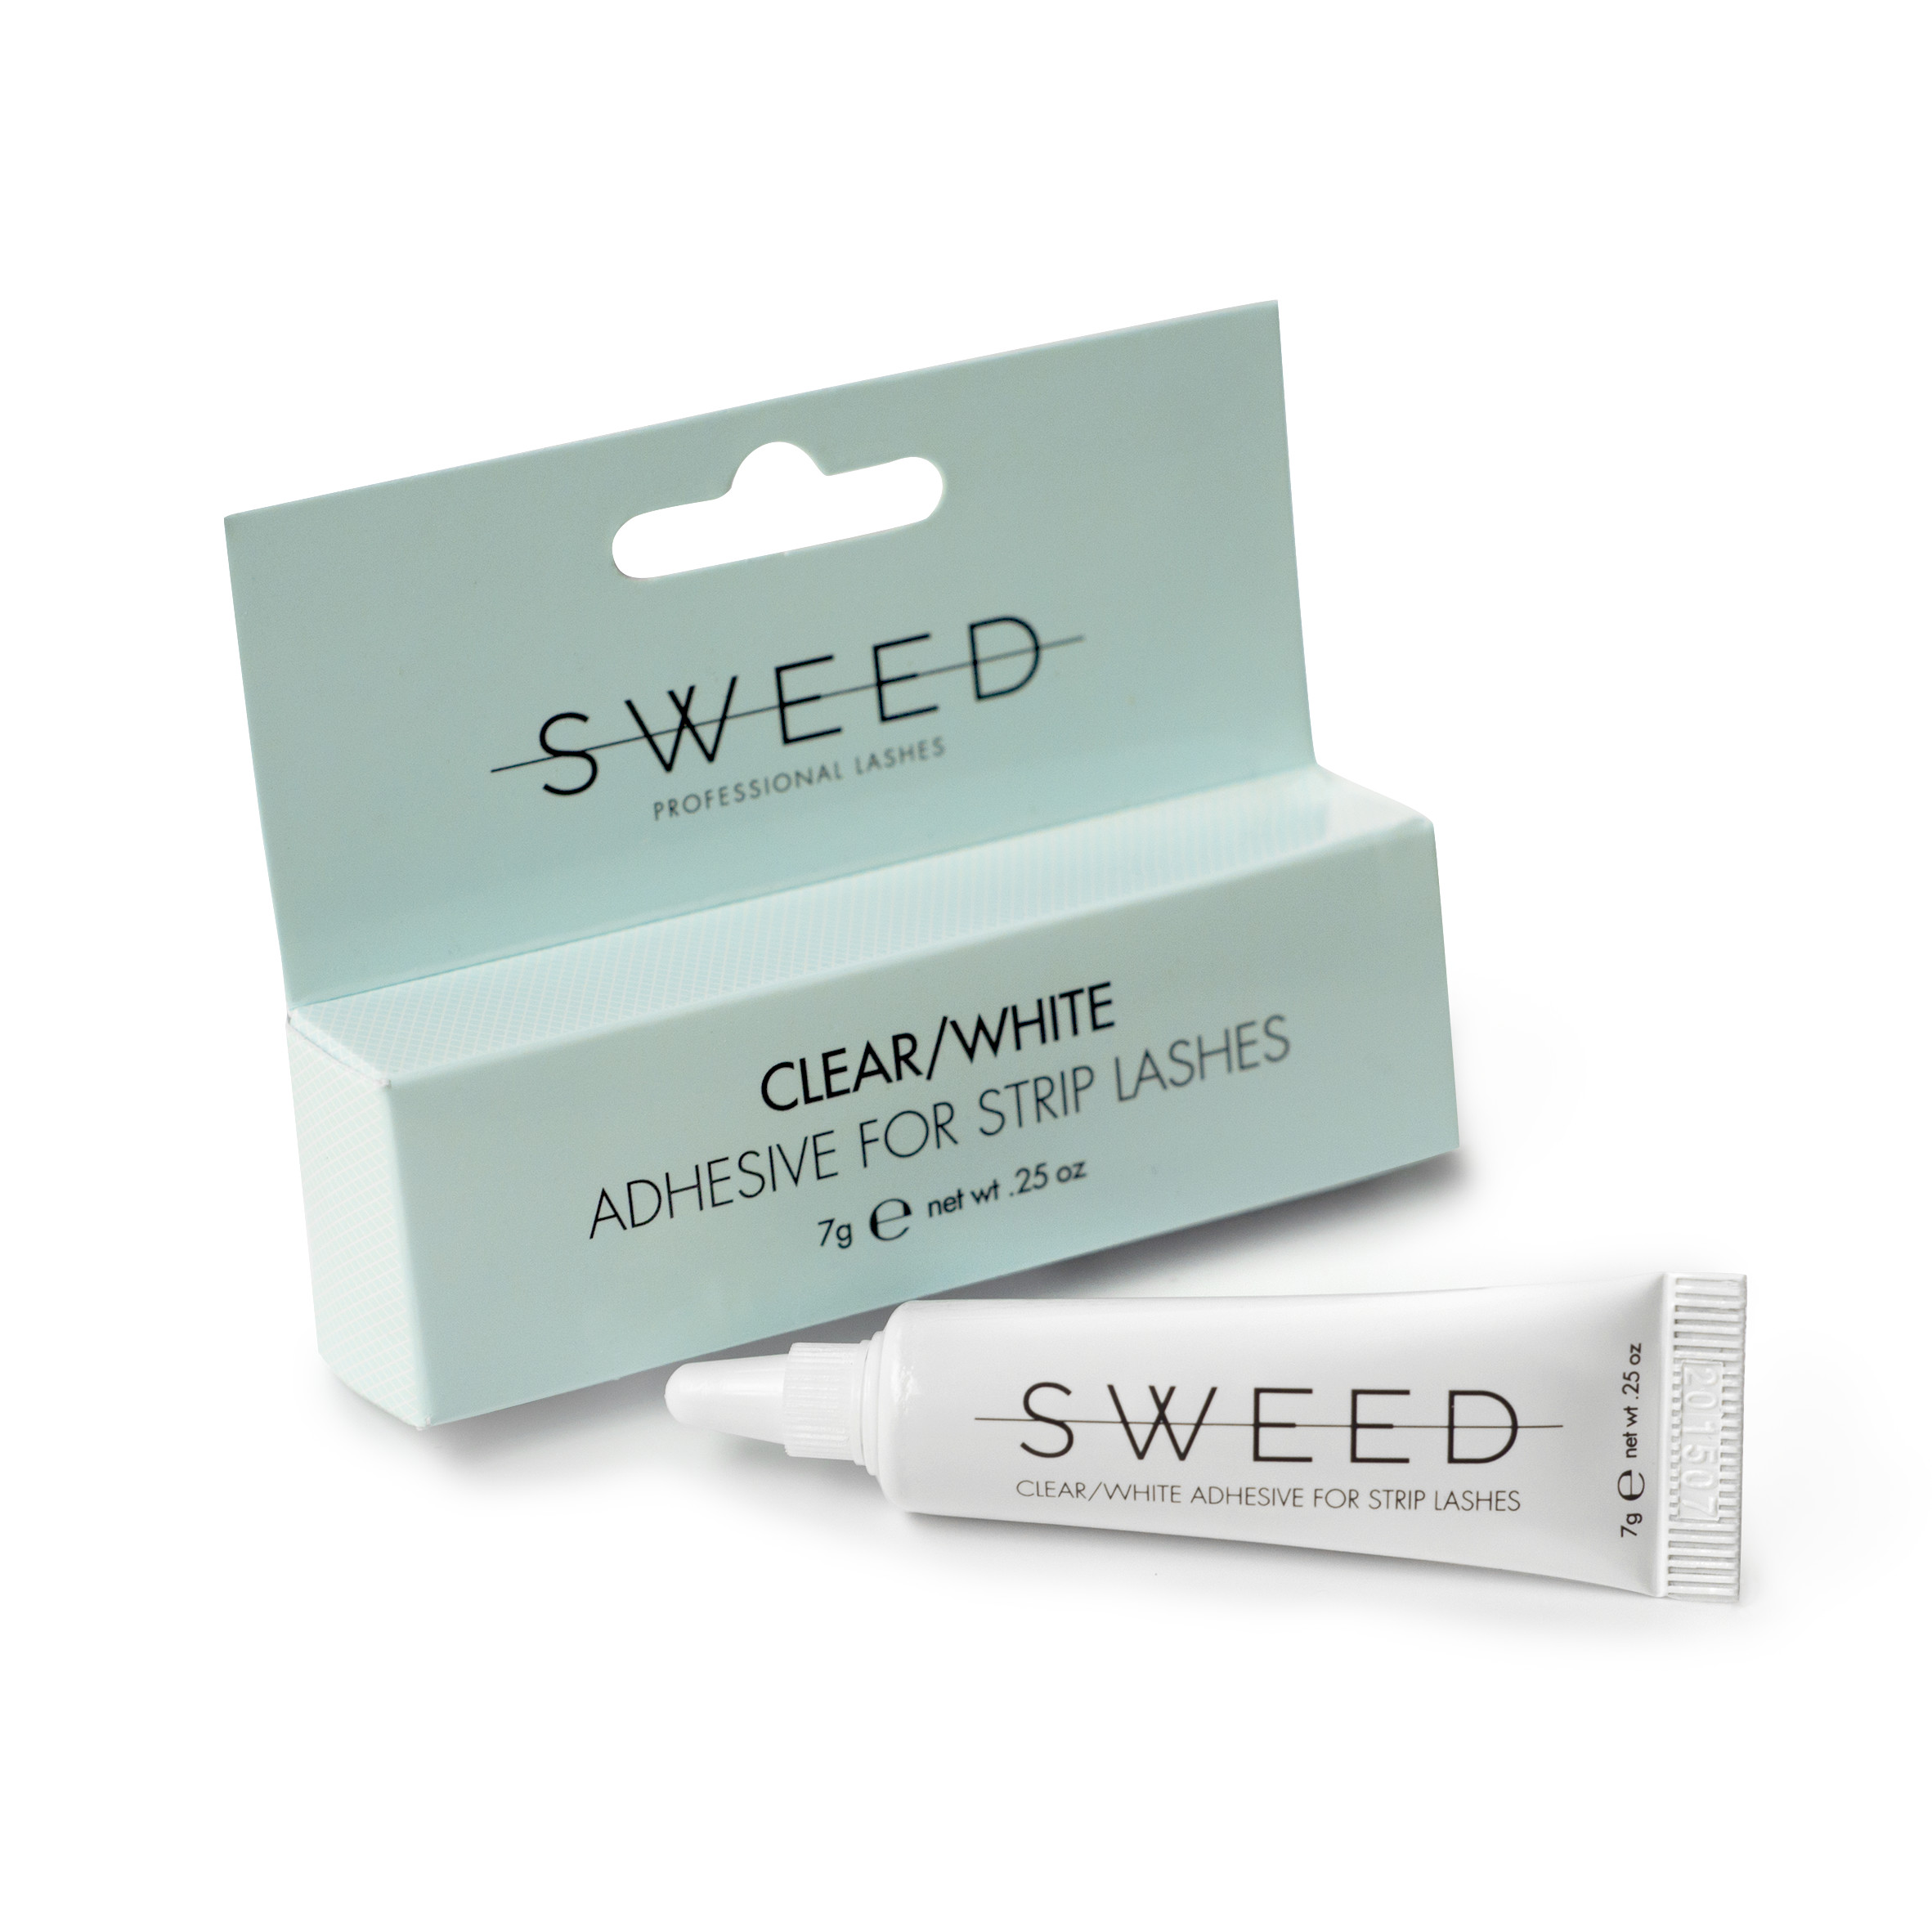 Adhesive for strip lashes Clear/White